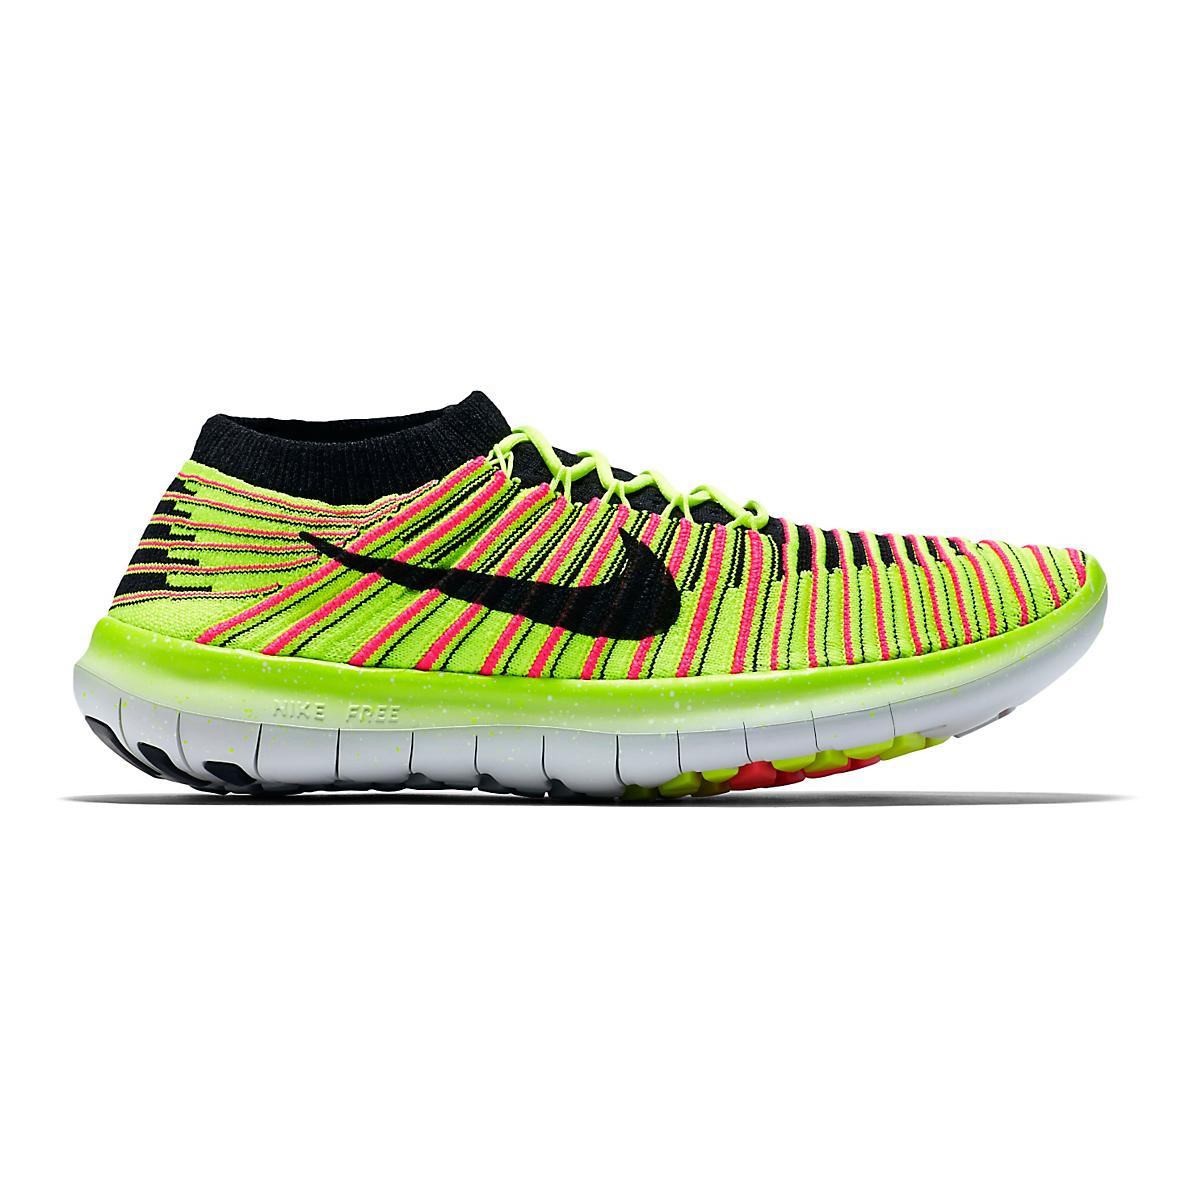 Womens Nike Free RN Motion Flyknit Running Shoe at Road Runner Sports 01bff01d3